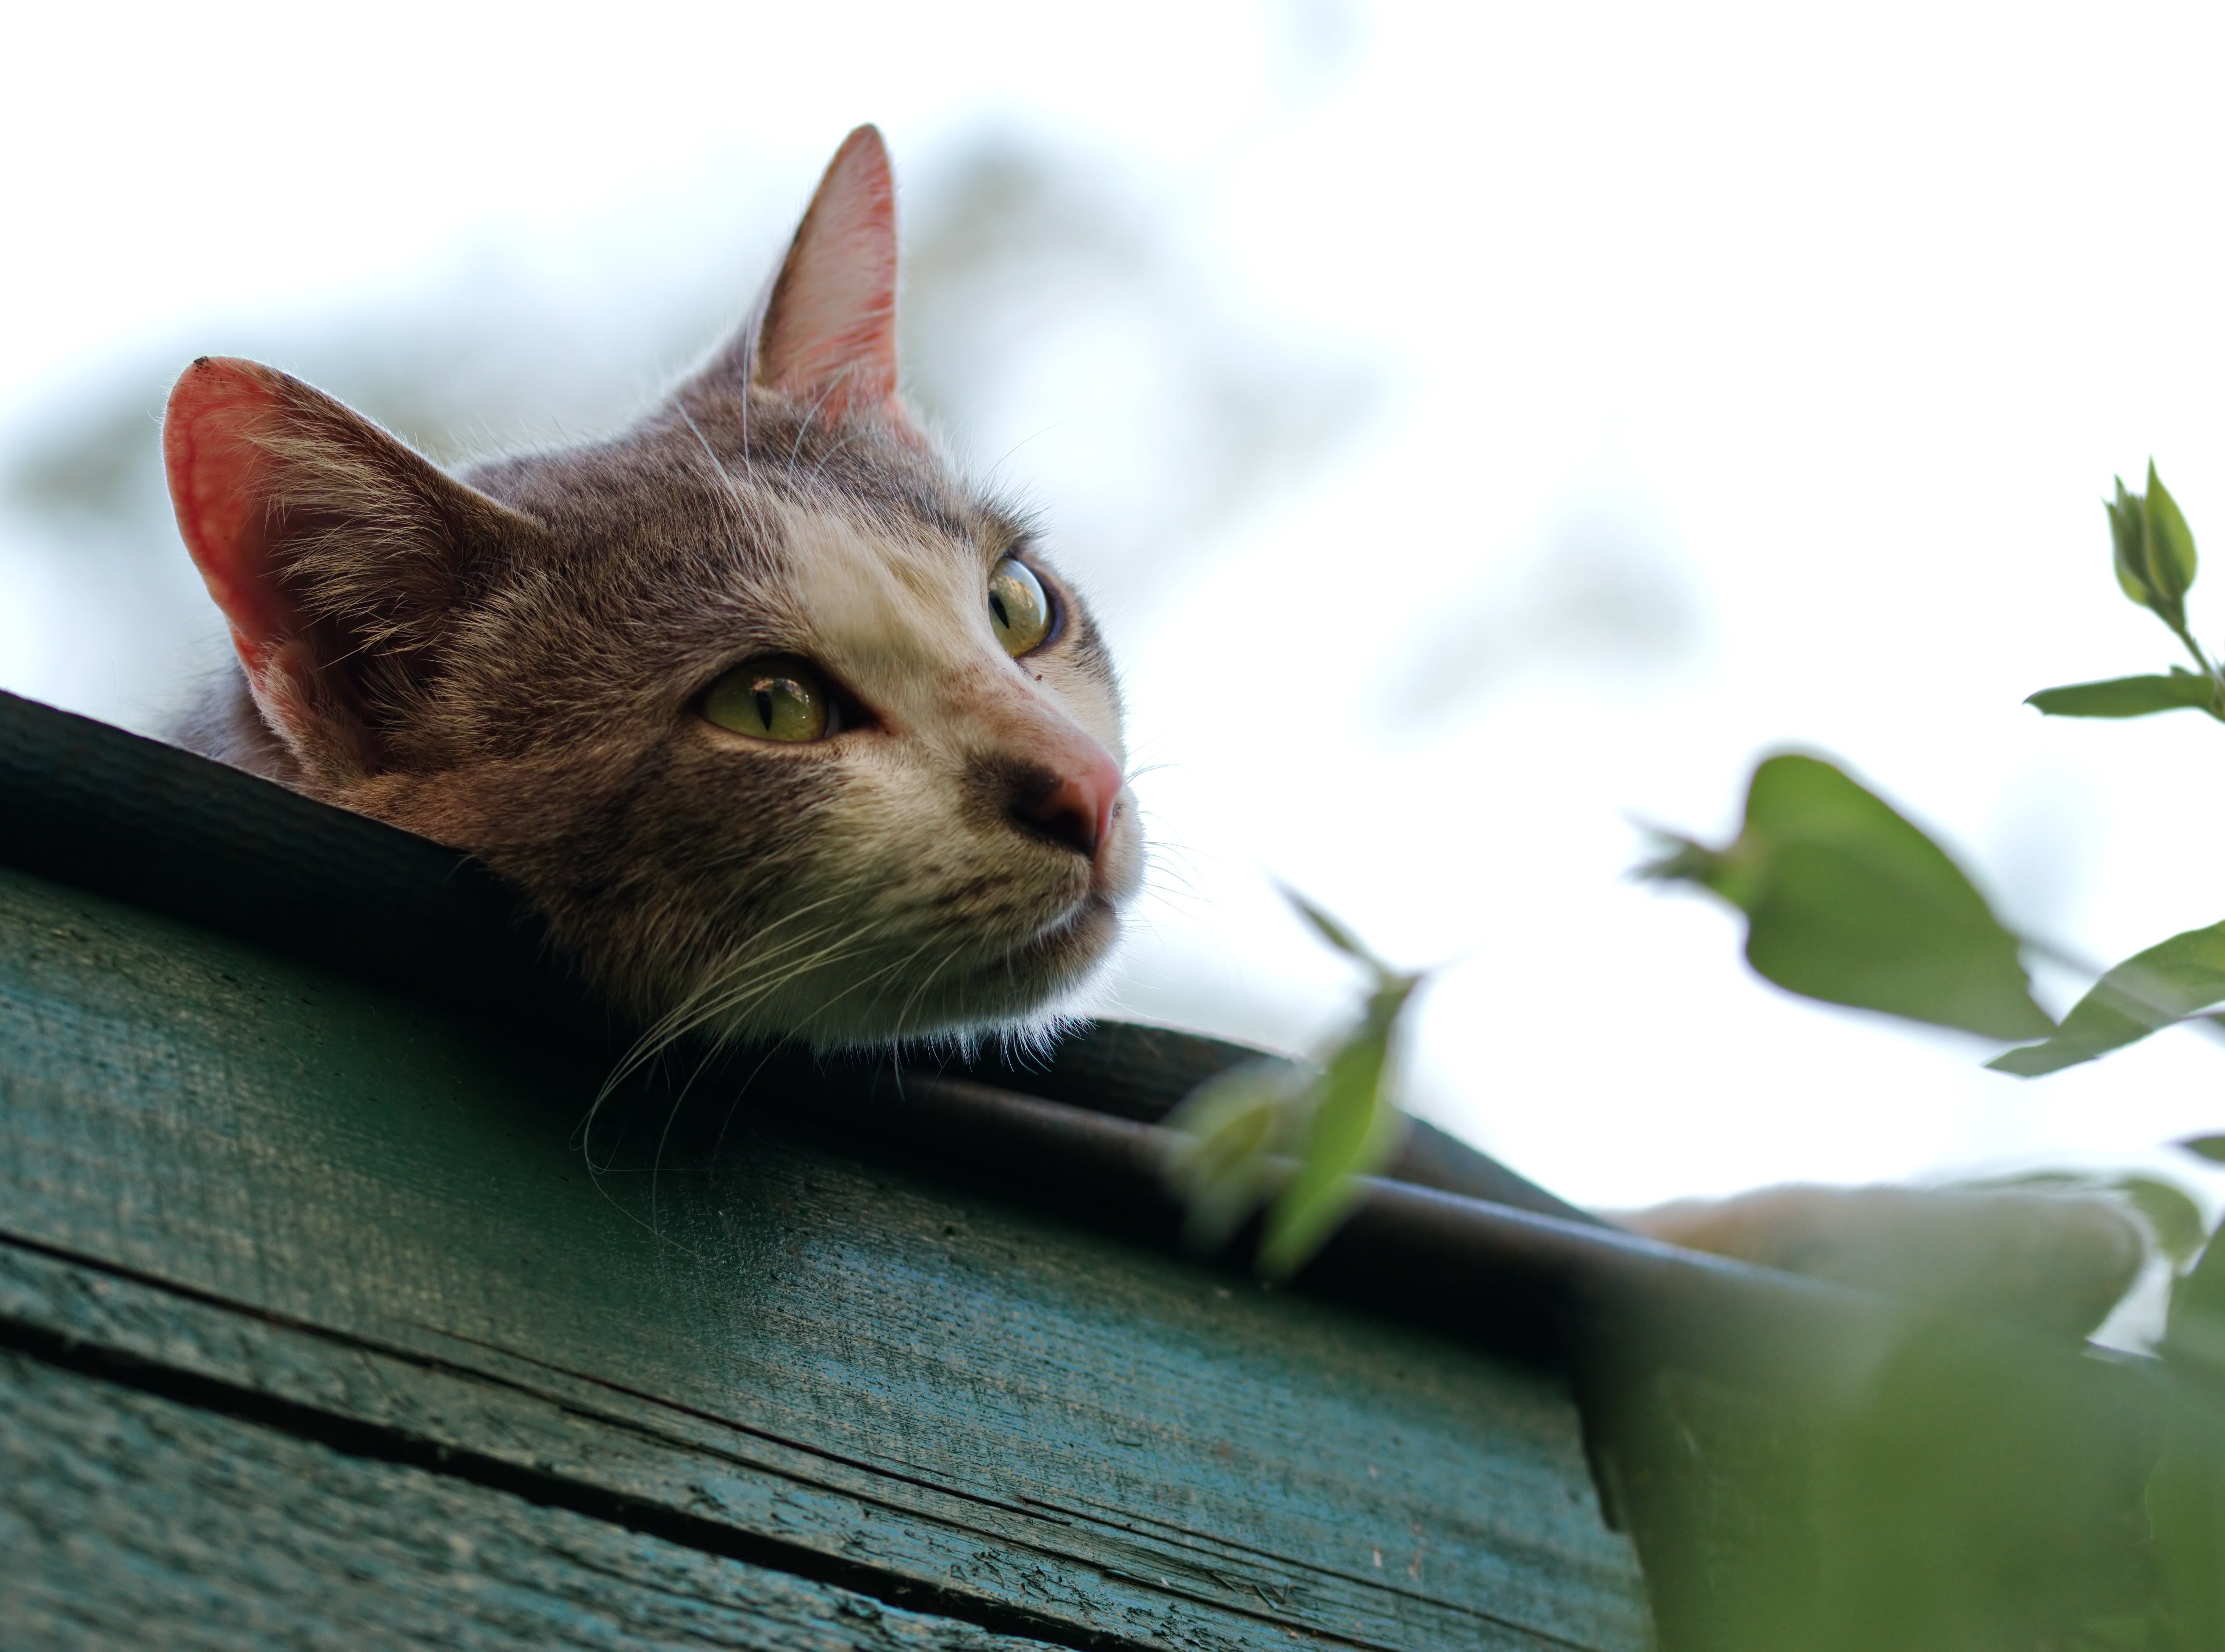 Shallow Focus Photography of Short-coated Gray and White Cat